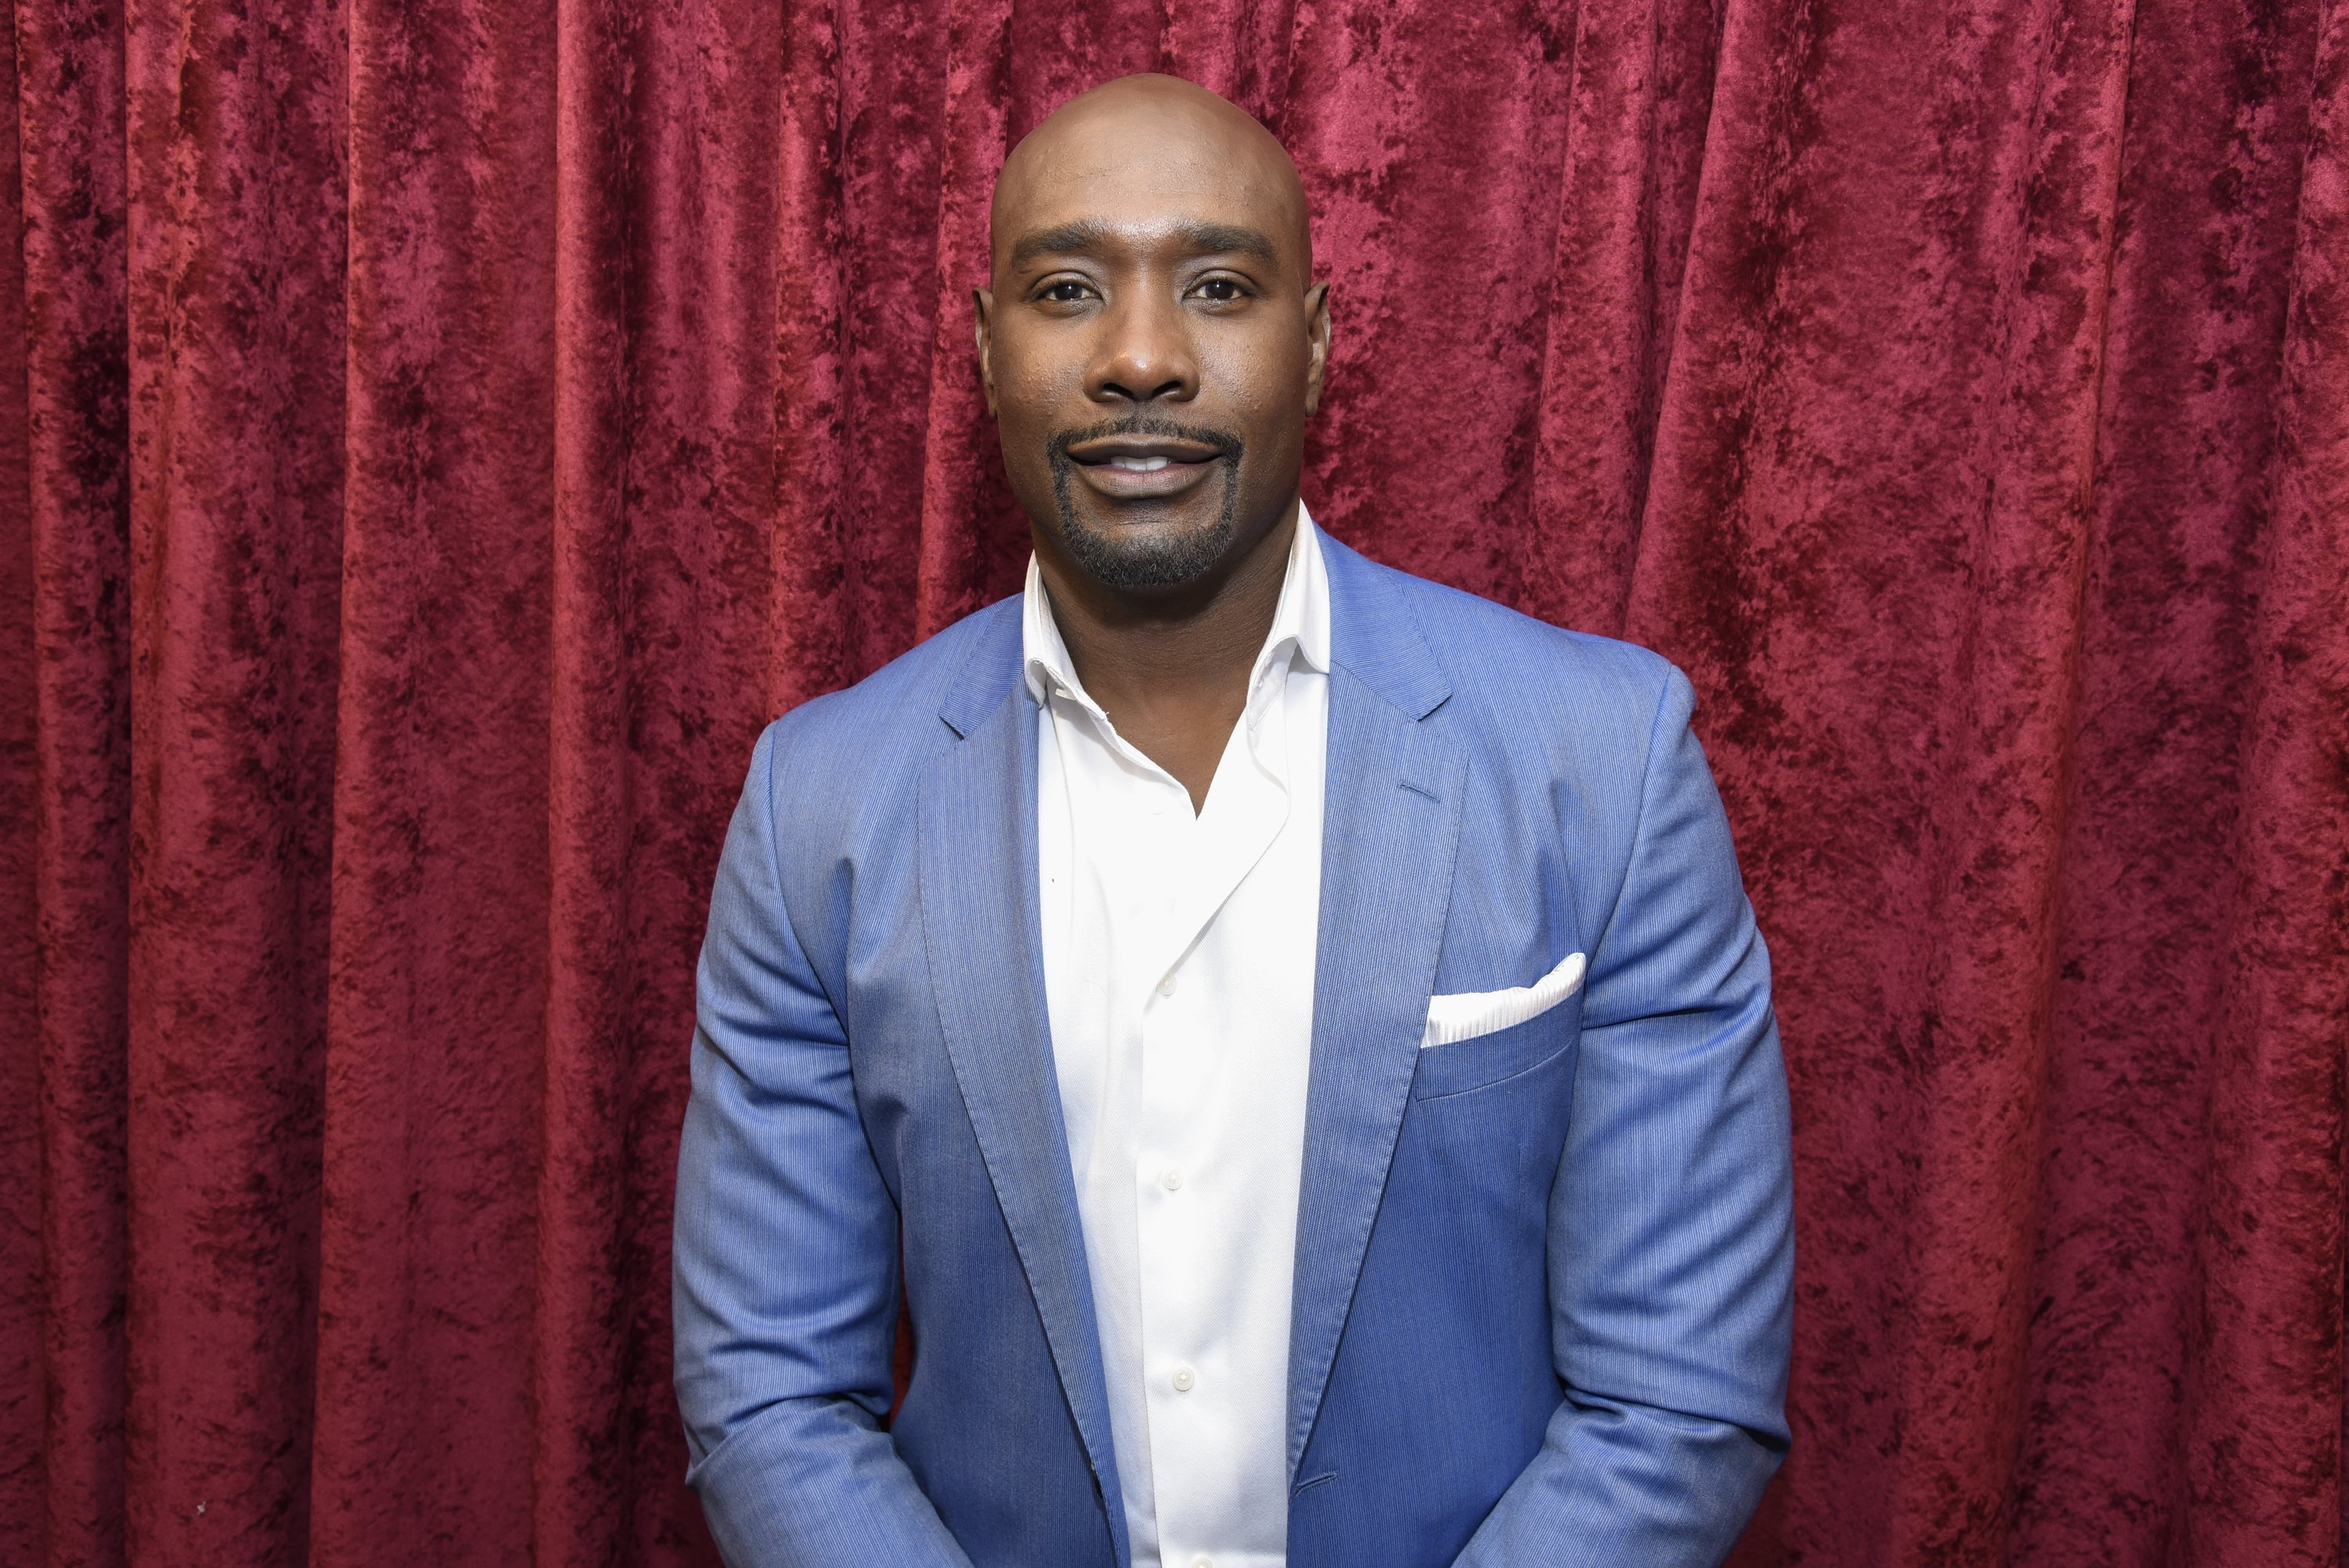 Morris Chestnut visits SiriusXM Studio on Sept. 7, 2016 in New York City | Photo: Getty Images